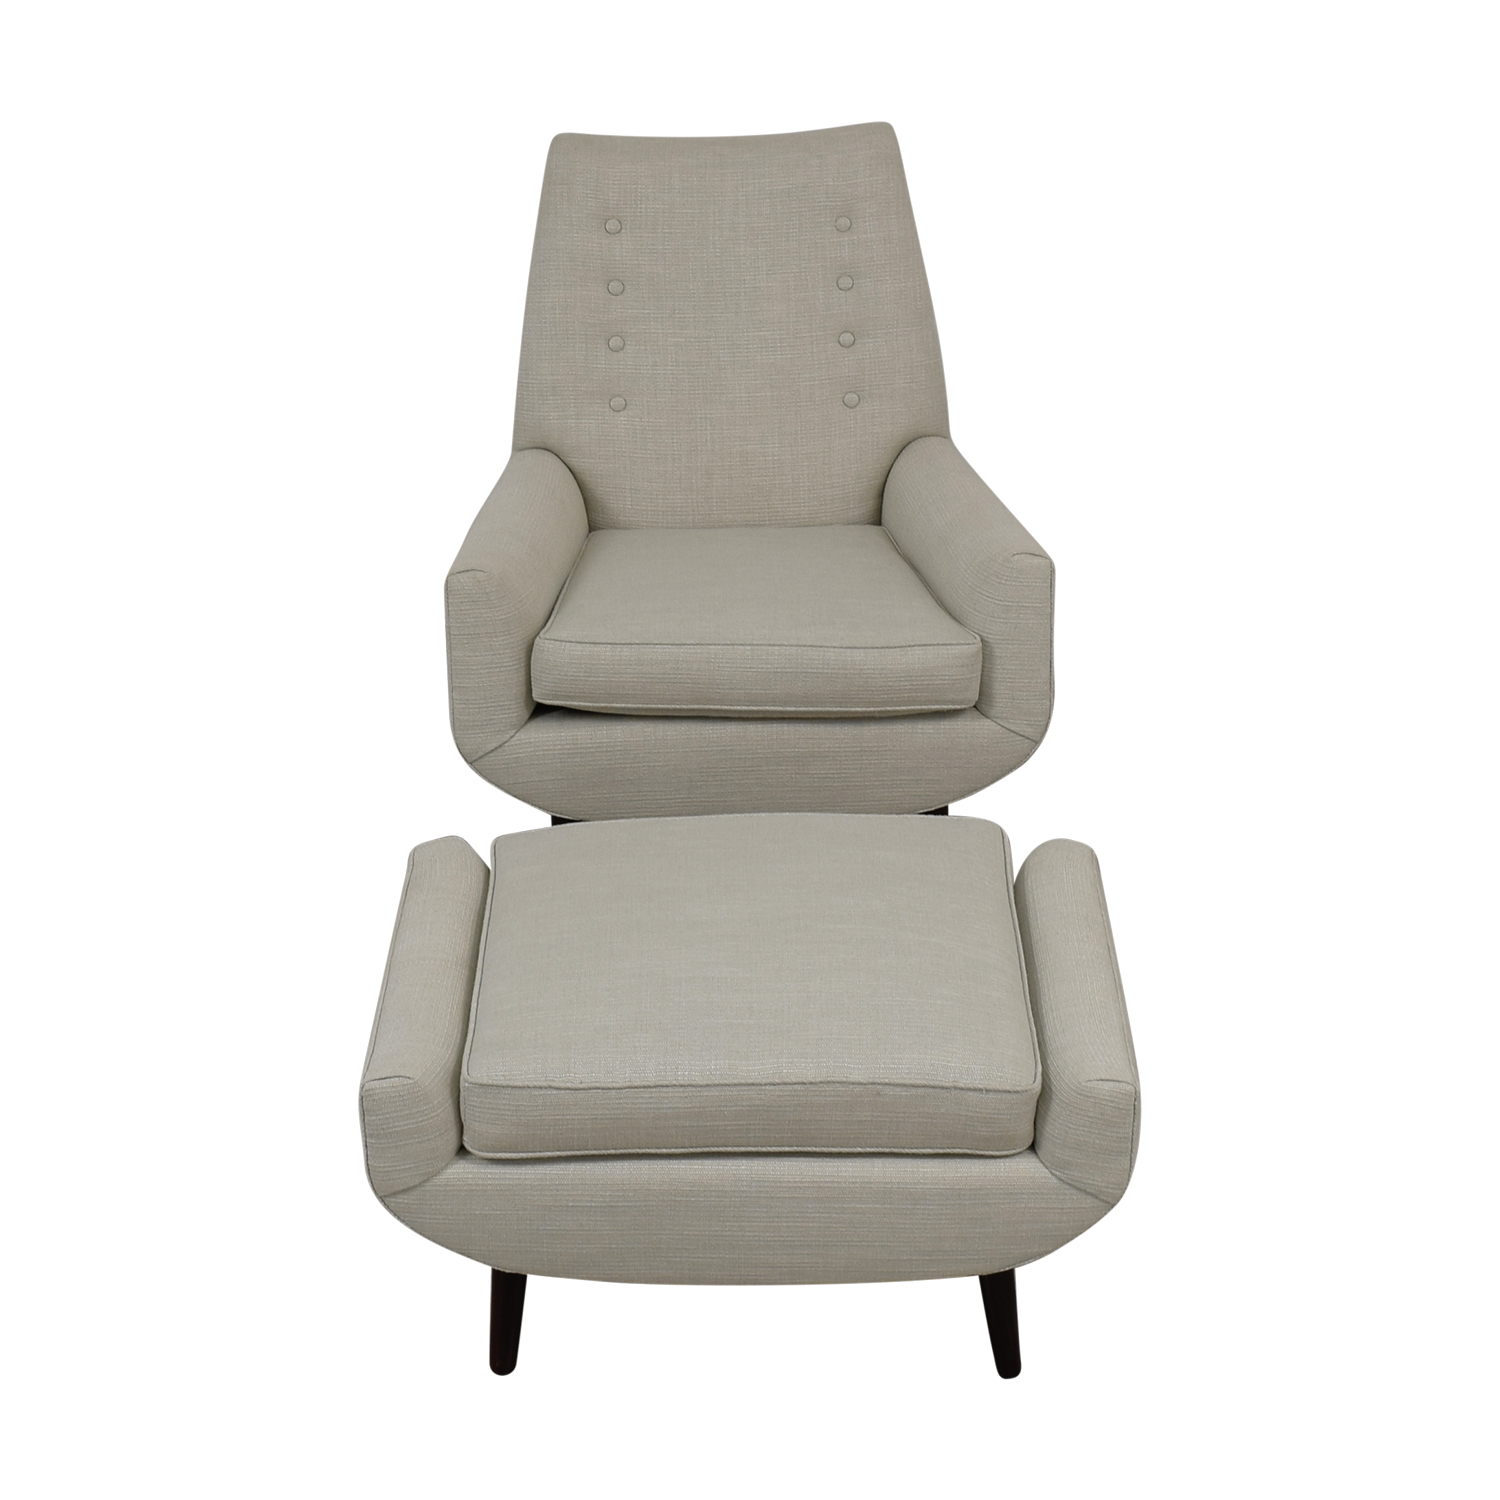 Furniture Masters Furniture Masters Fabric Chair with Ottoman for sale